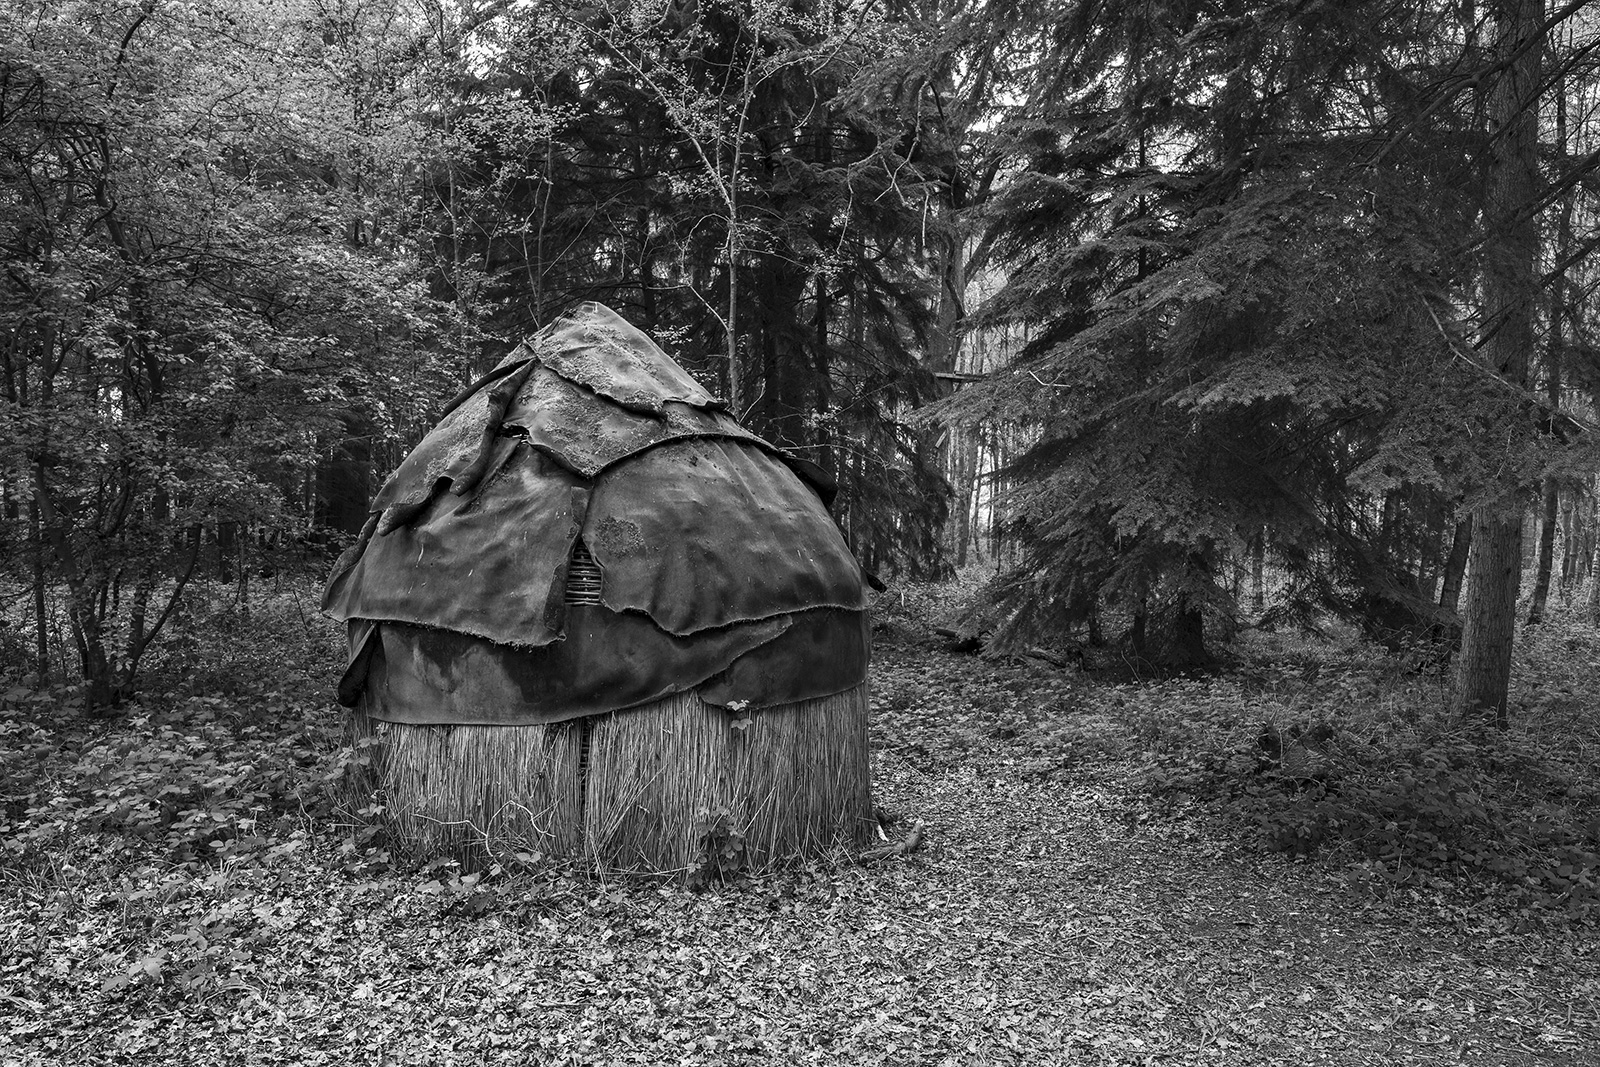 Weathered historic leather roofed reed hut in woodland, black and white portrait rural landscape Glynedbourne Wood East Sussex UK ©P. Maton 2019 eyeteeth.net